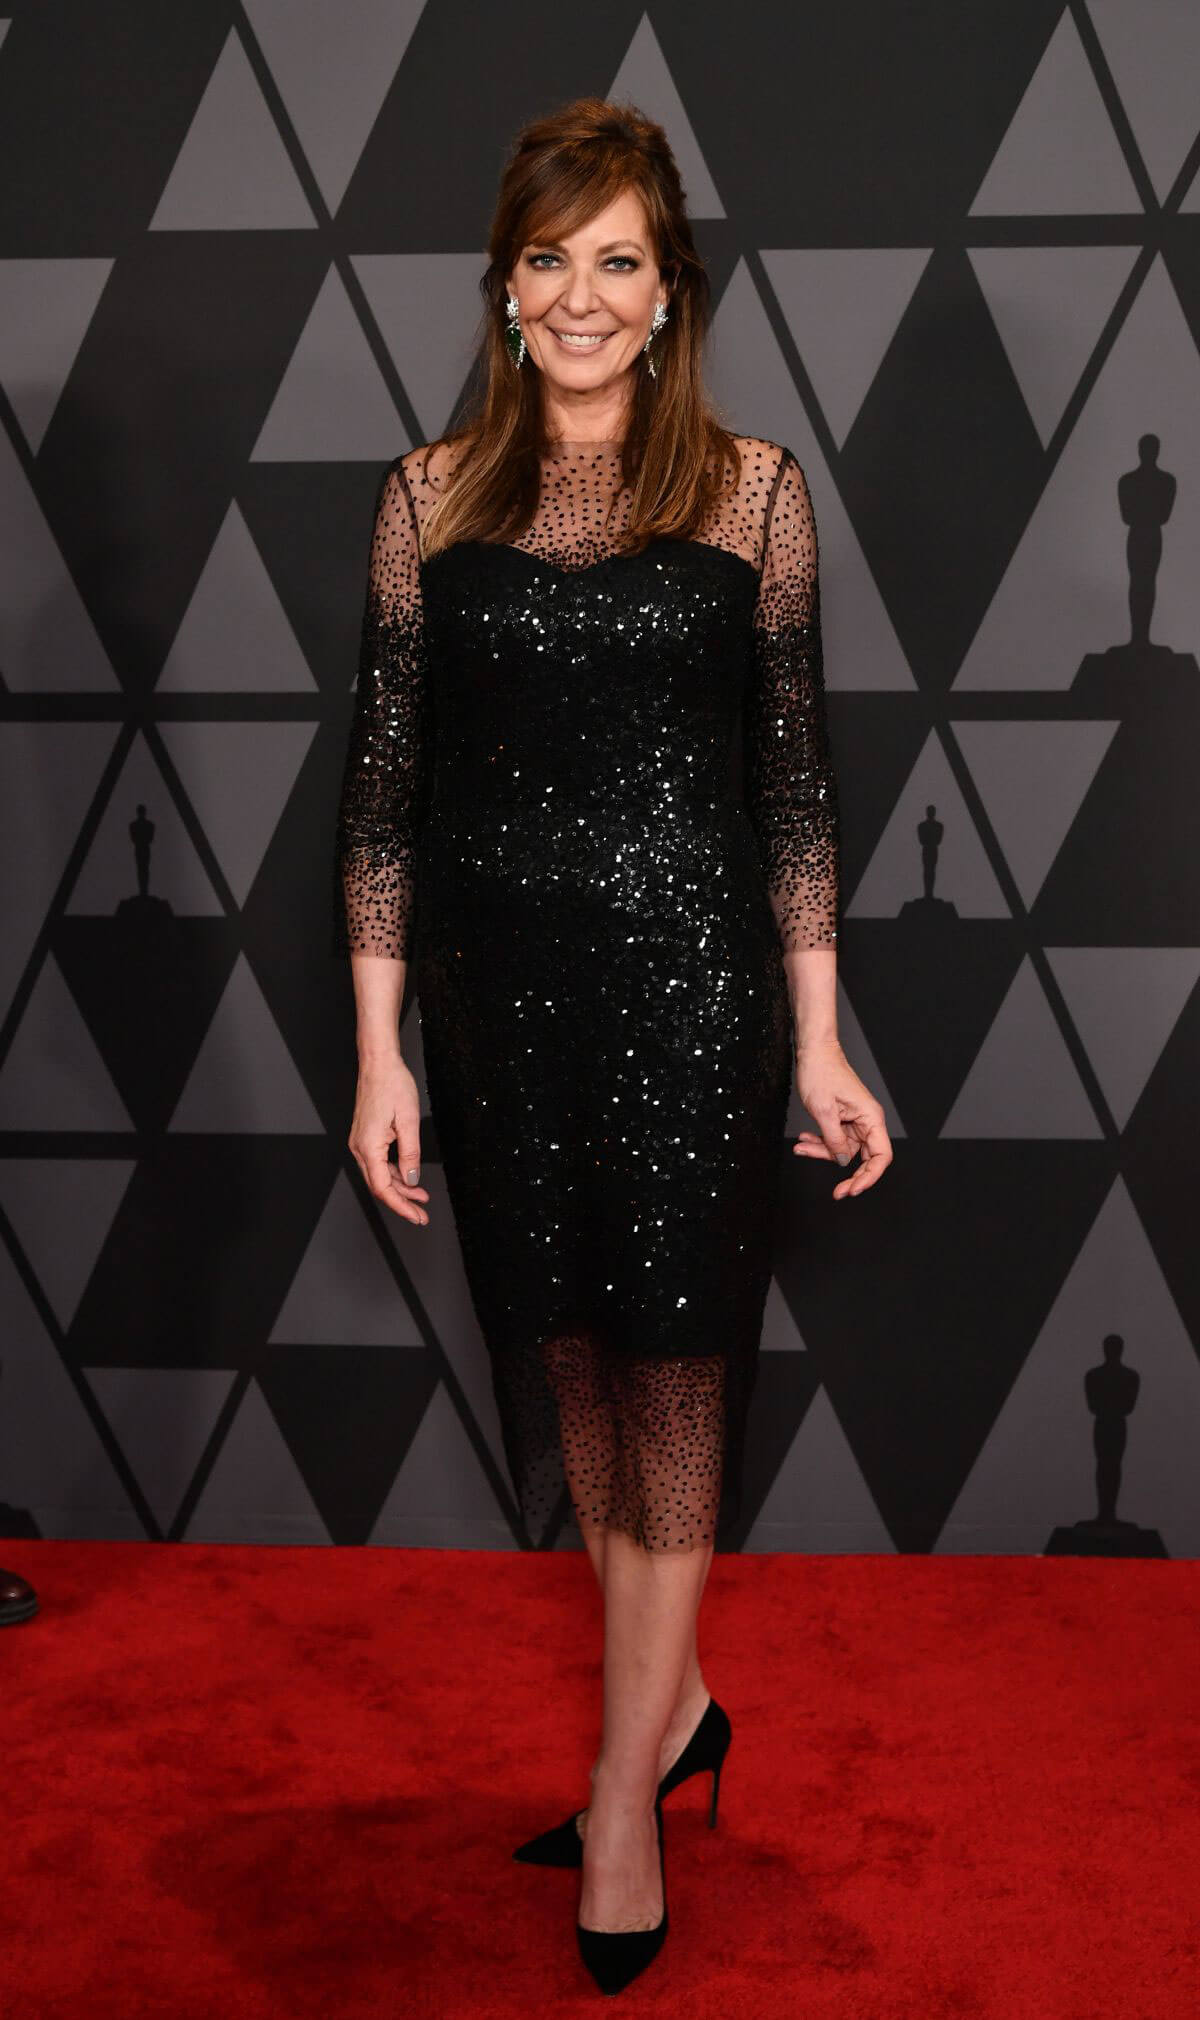 Allison Janney Stills at AMPAS 9th Annual Governors Awards in Hollywood